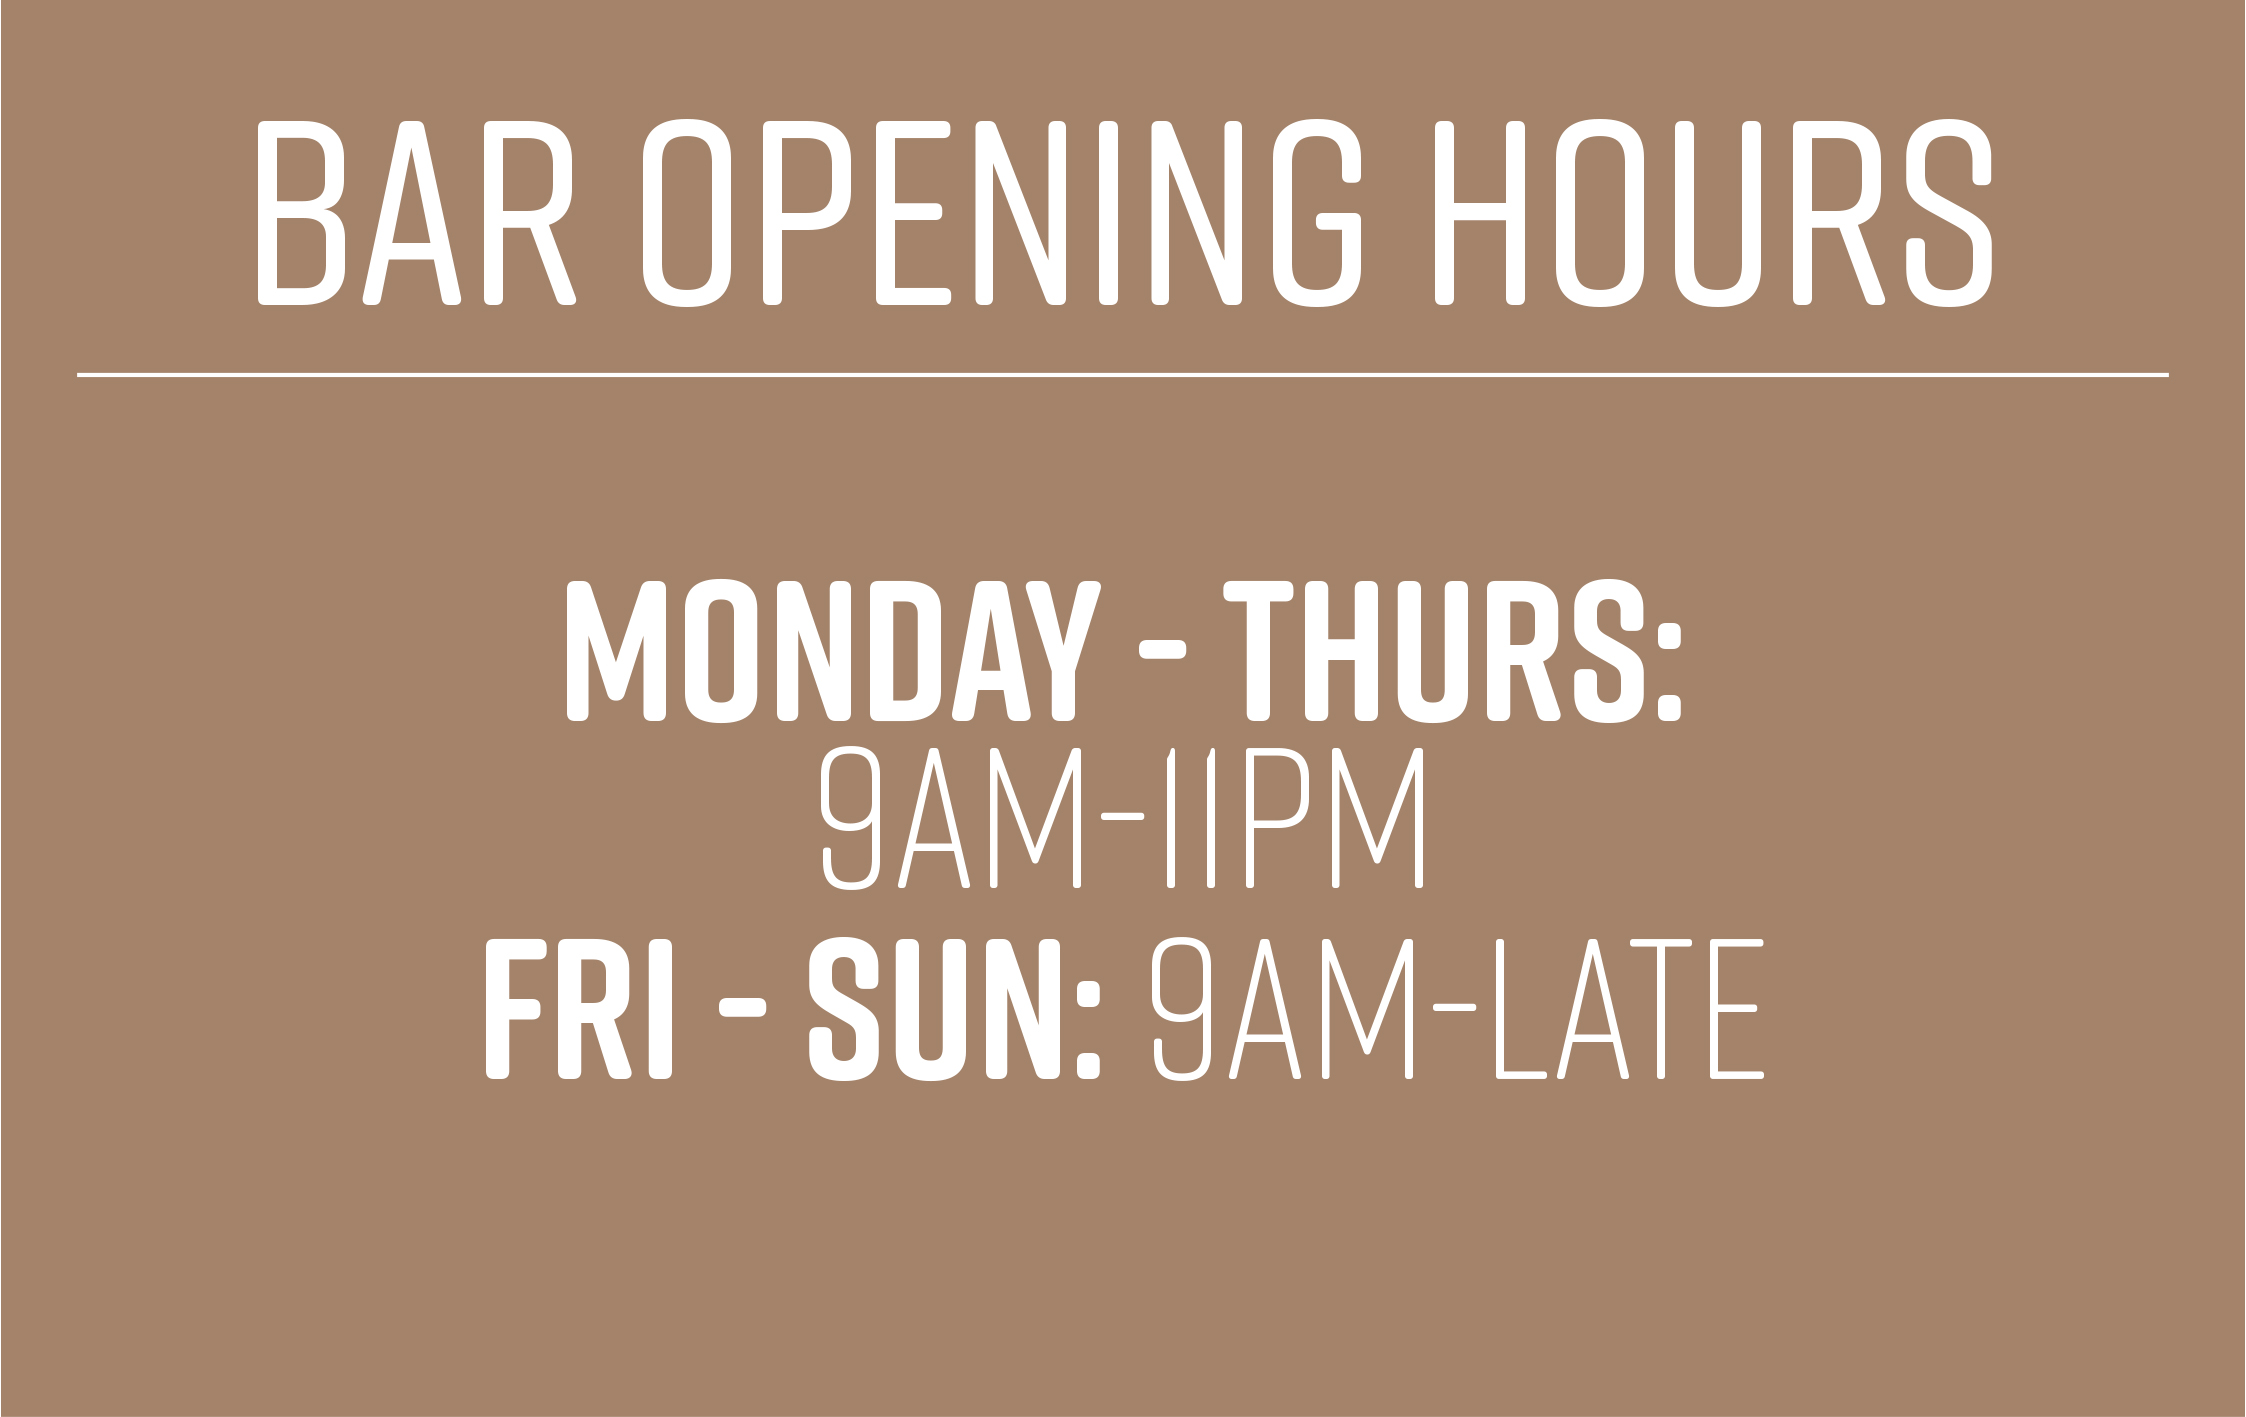 Opening Hours for the Bar